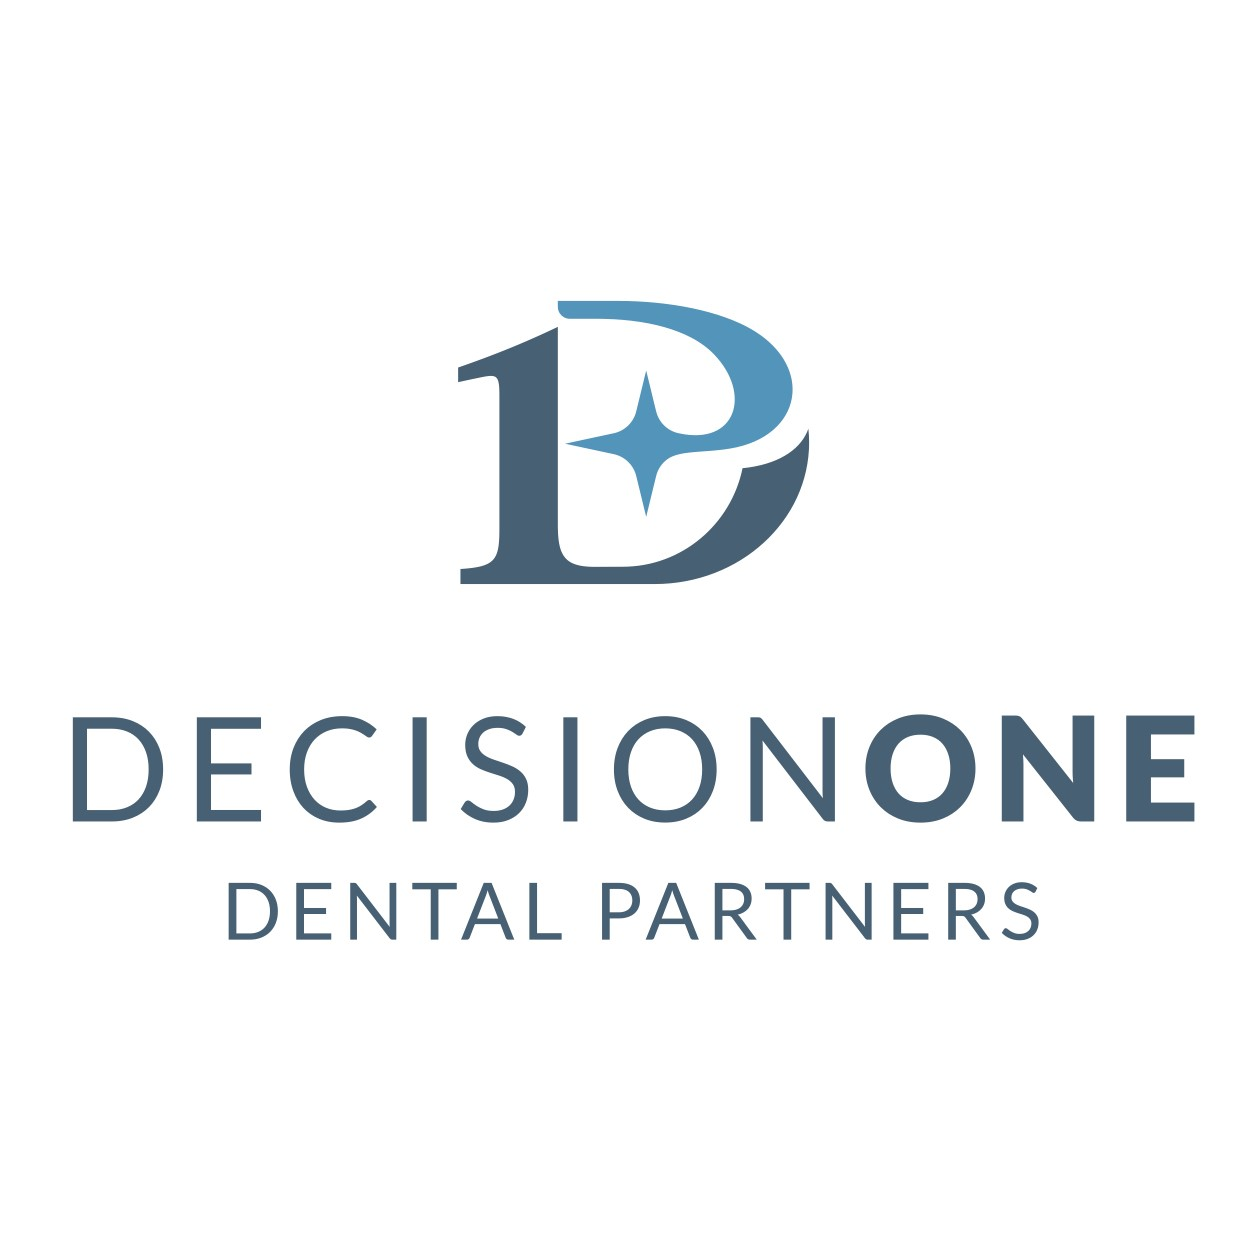 one decision Decisionone dental partners is chicago's fastest growing dental alliance founded by 2 brothers focused on changing the way dentistry is done to improve lives.